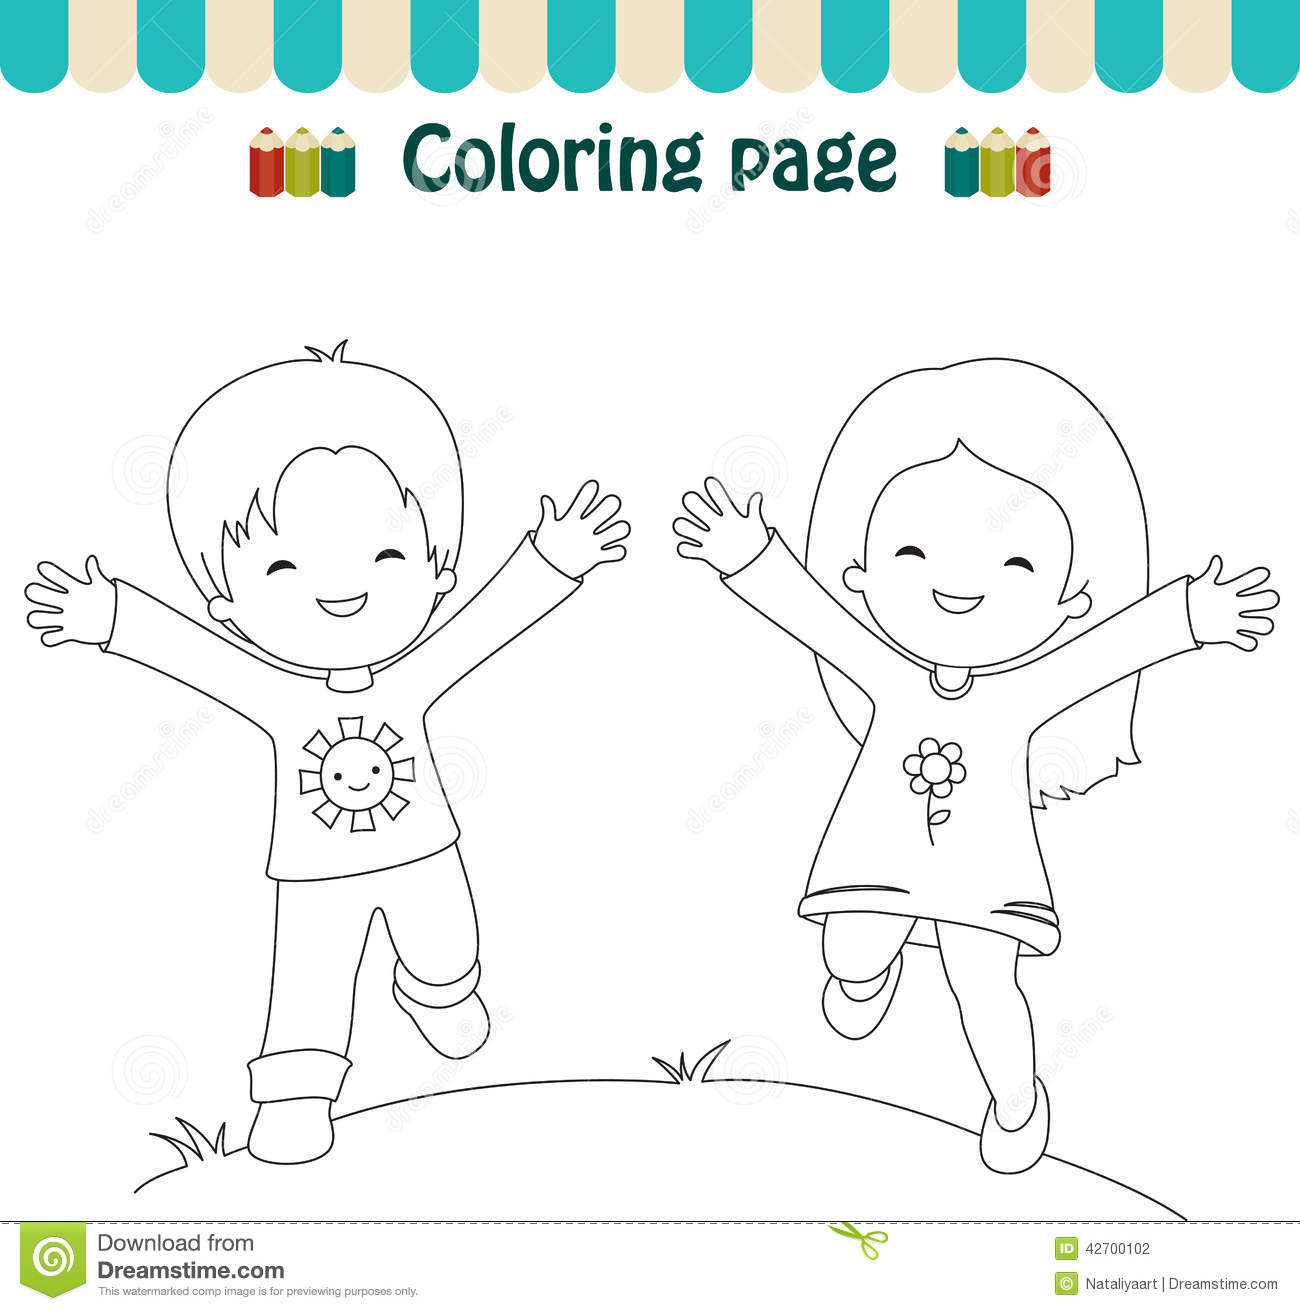 80 Top Coloring Pages For Boy And Girl Images & Pictures In HD